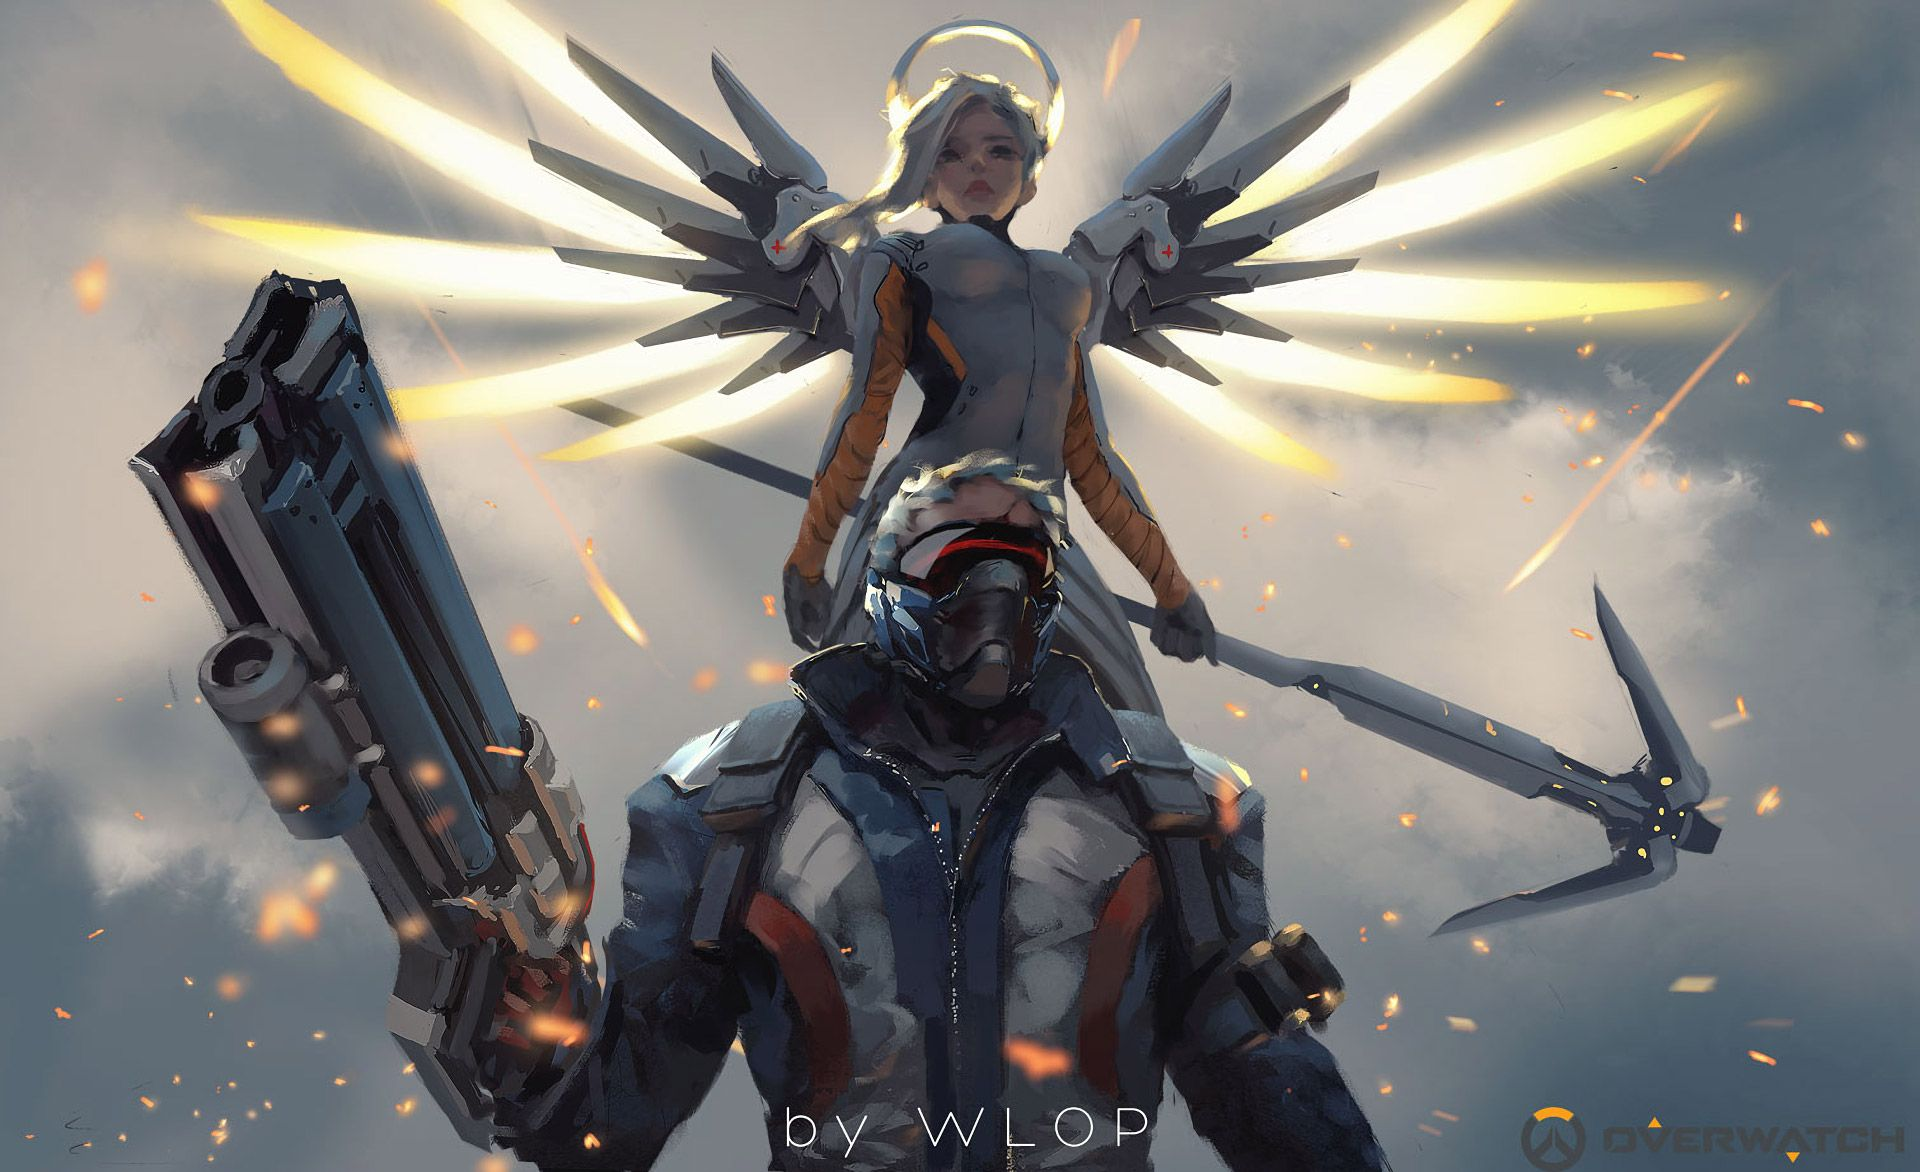 1920x1172 Mercy And Soldier 76 Overwatch Artwork, HD Games, 4k Wallpapers ...